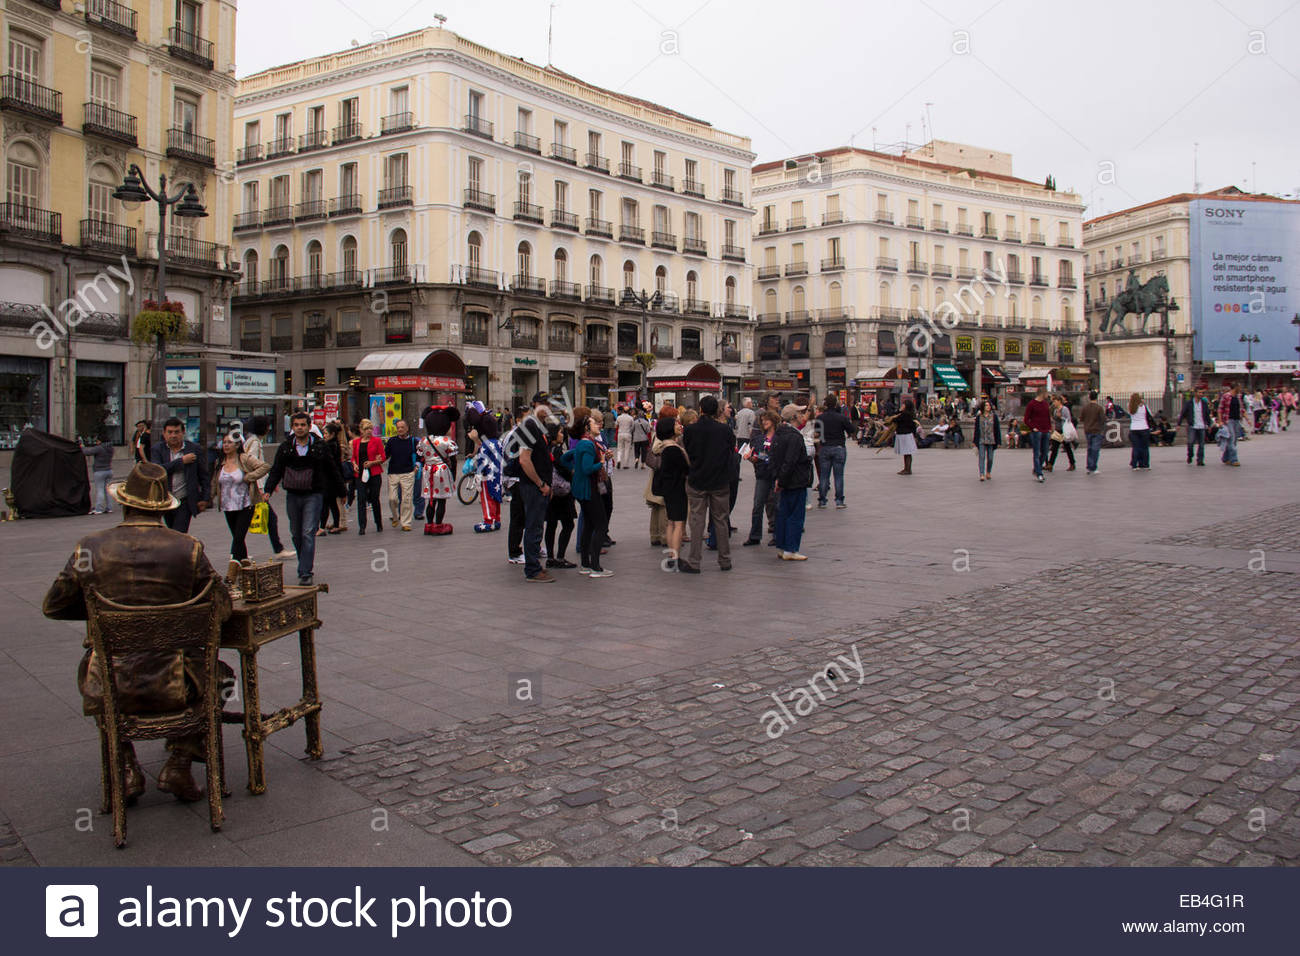 The historic Plaza de Sol is the social center point for city-dwellers. - Stock Image